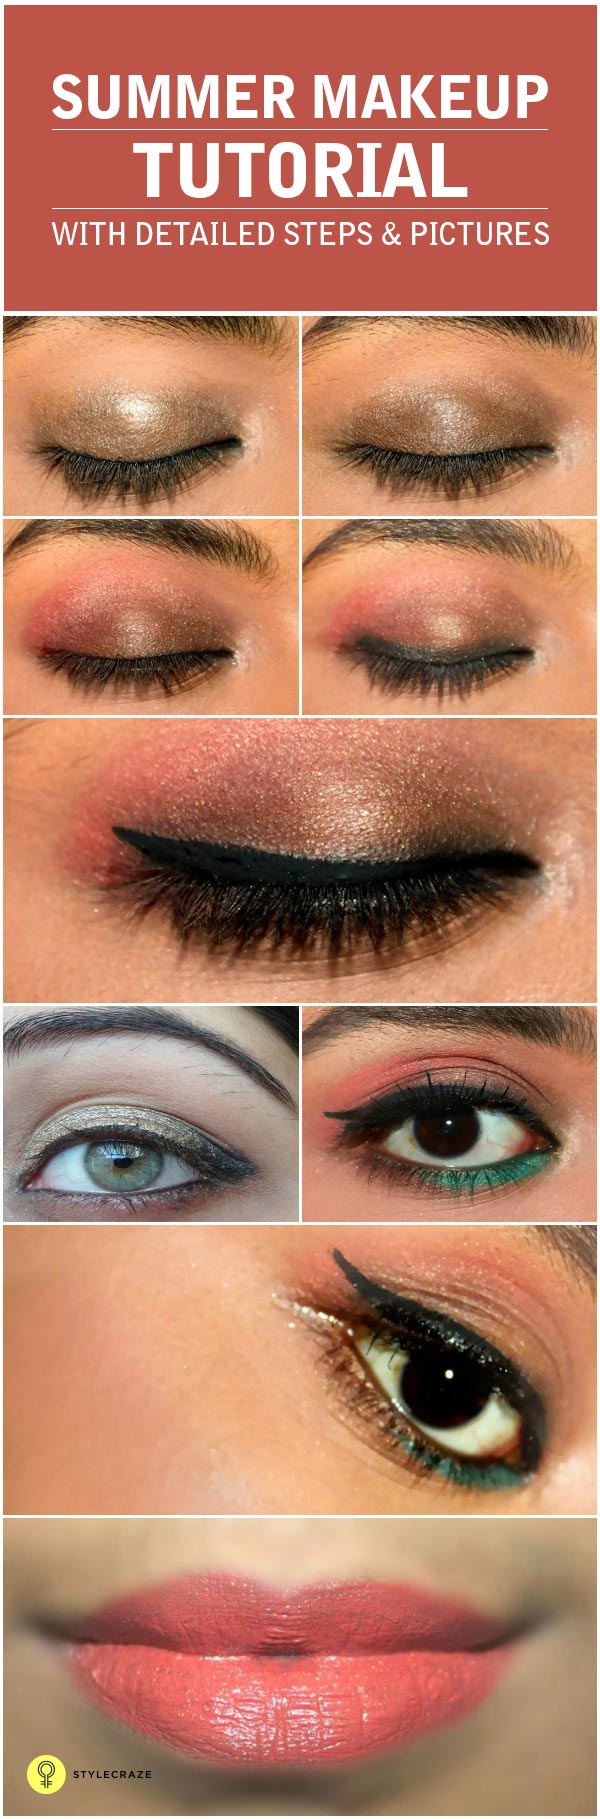 Summer Makeup Tutorial With Detailed Steps & Pictures